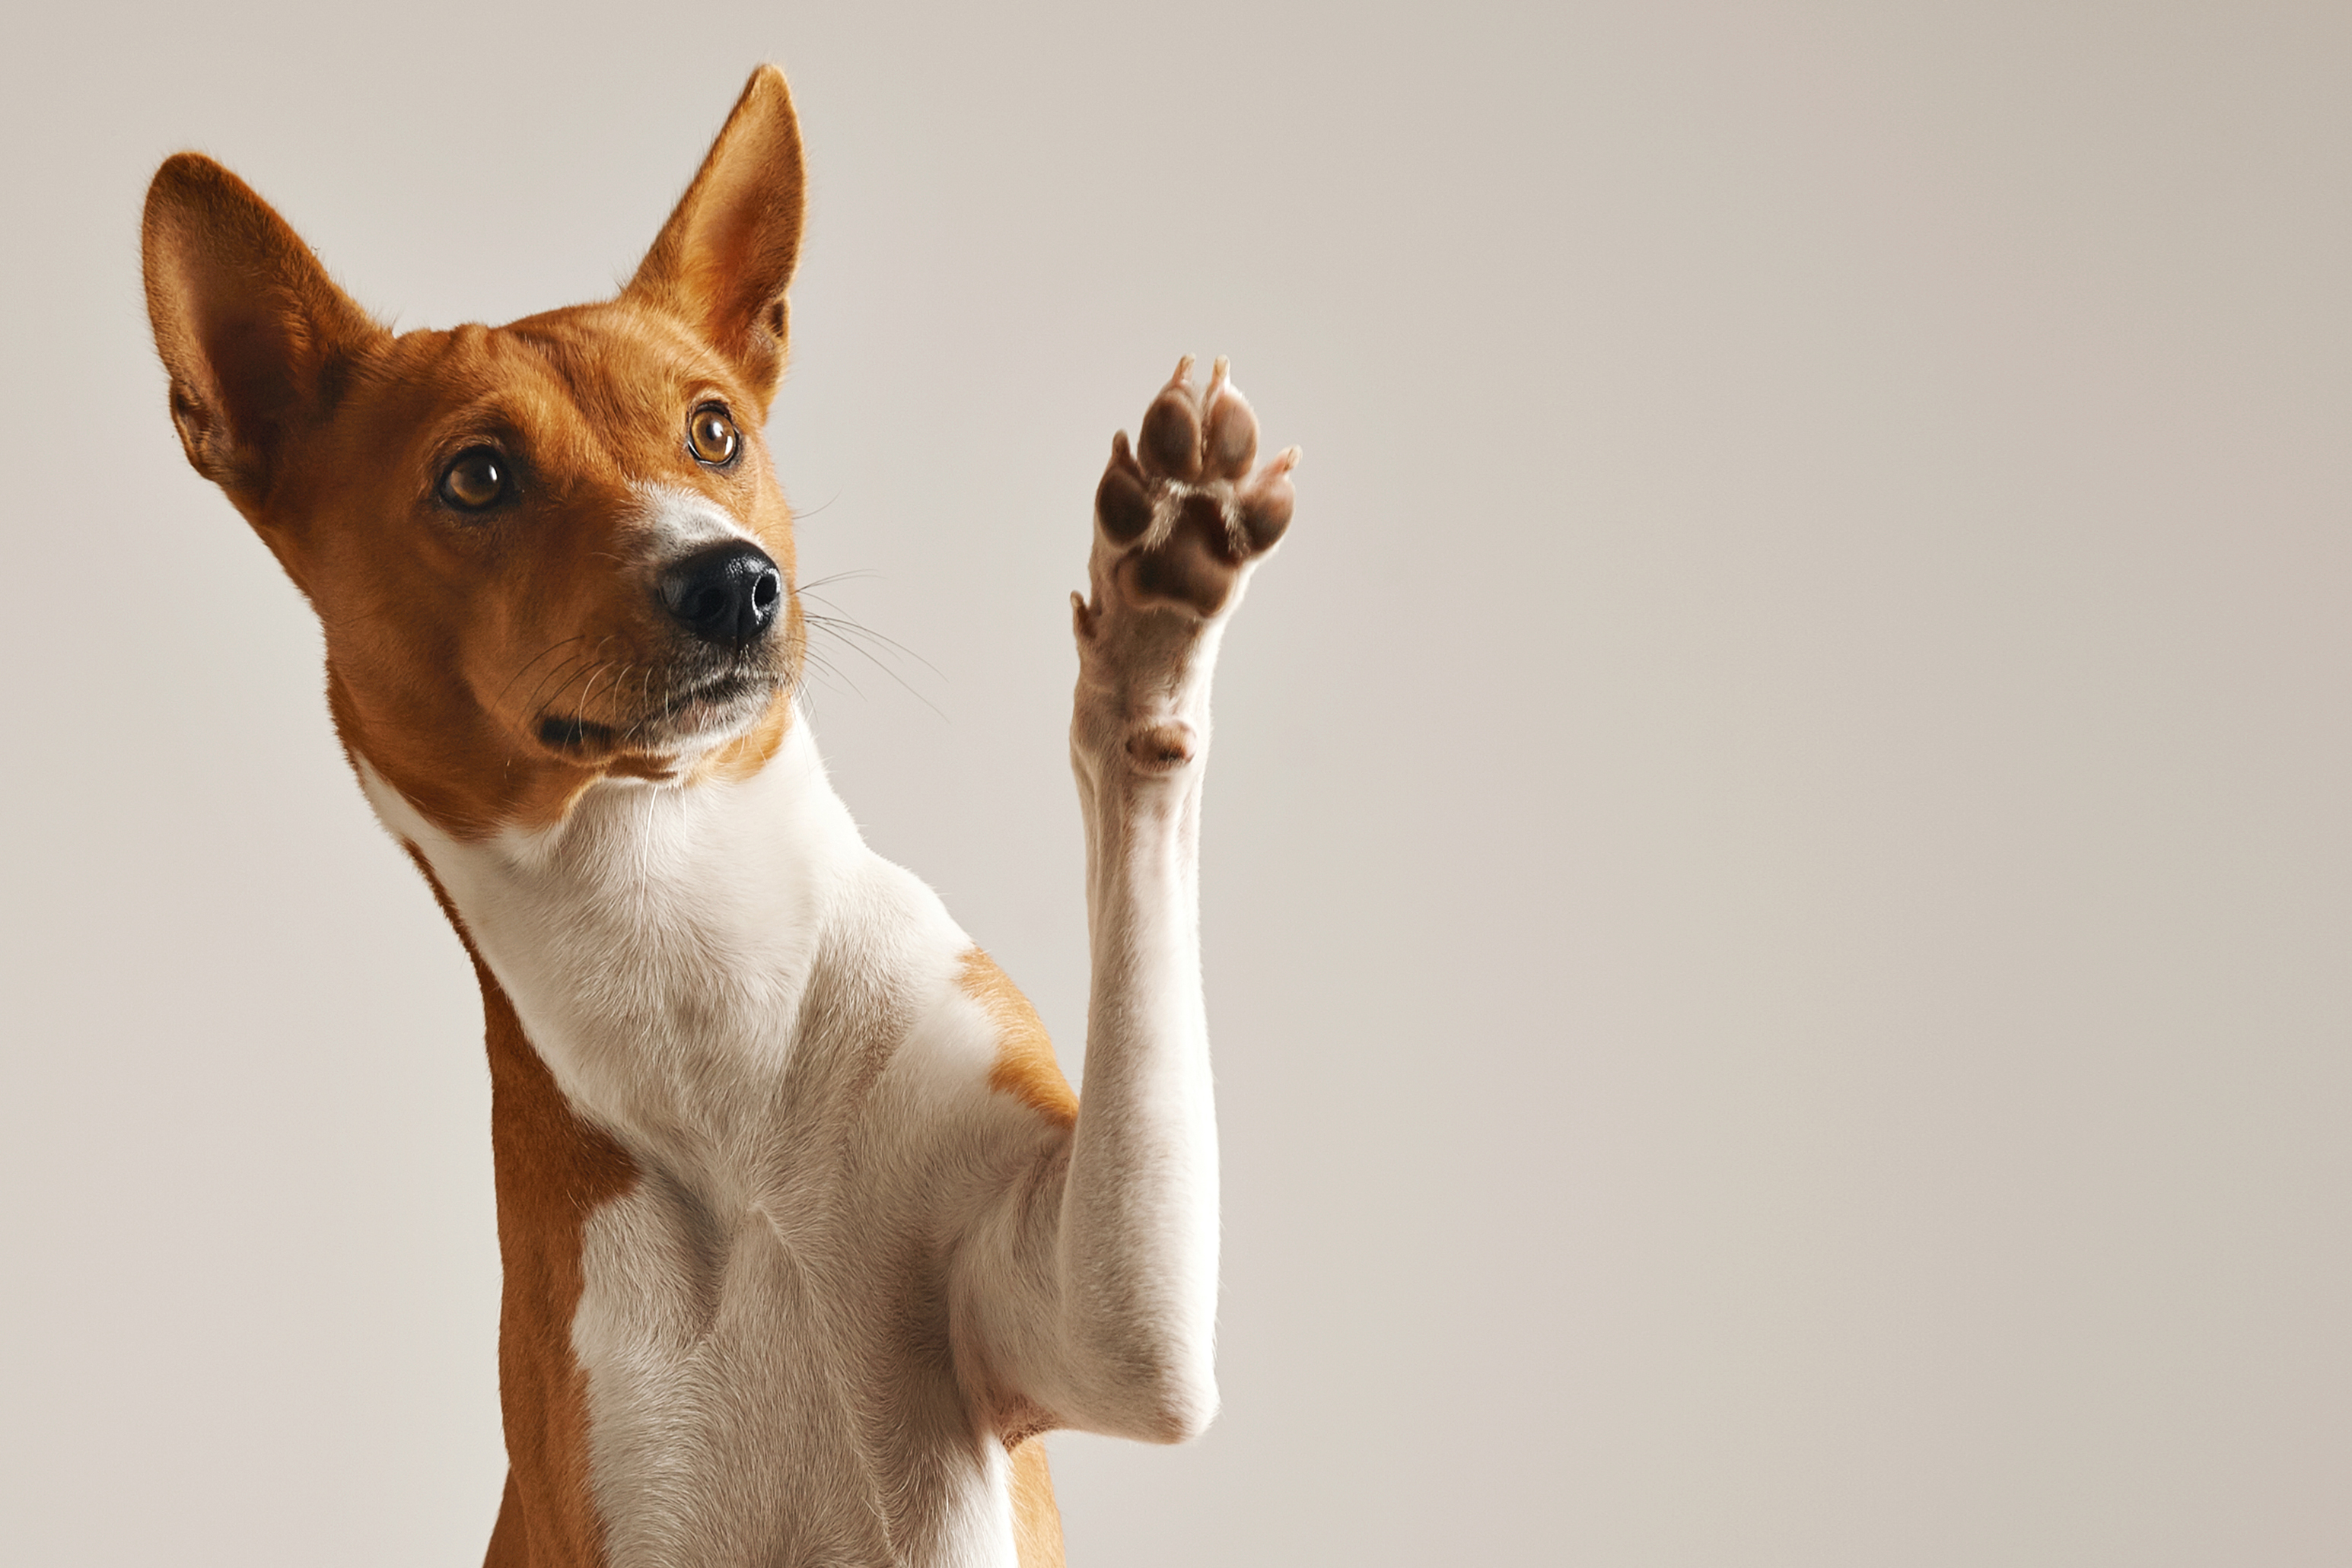 Paws for thought (Thinkstock/PA)